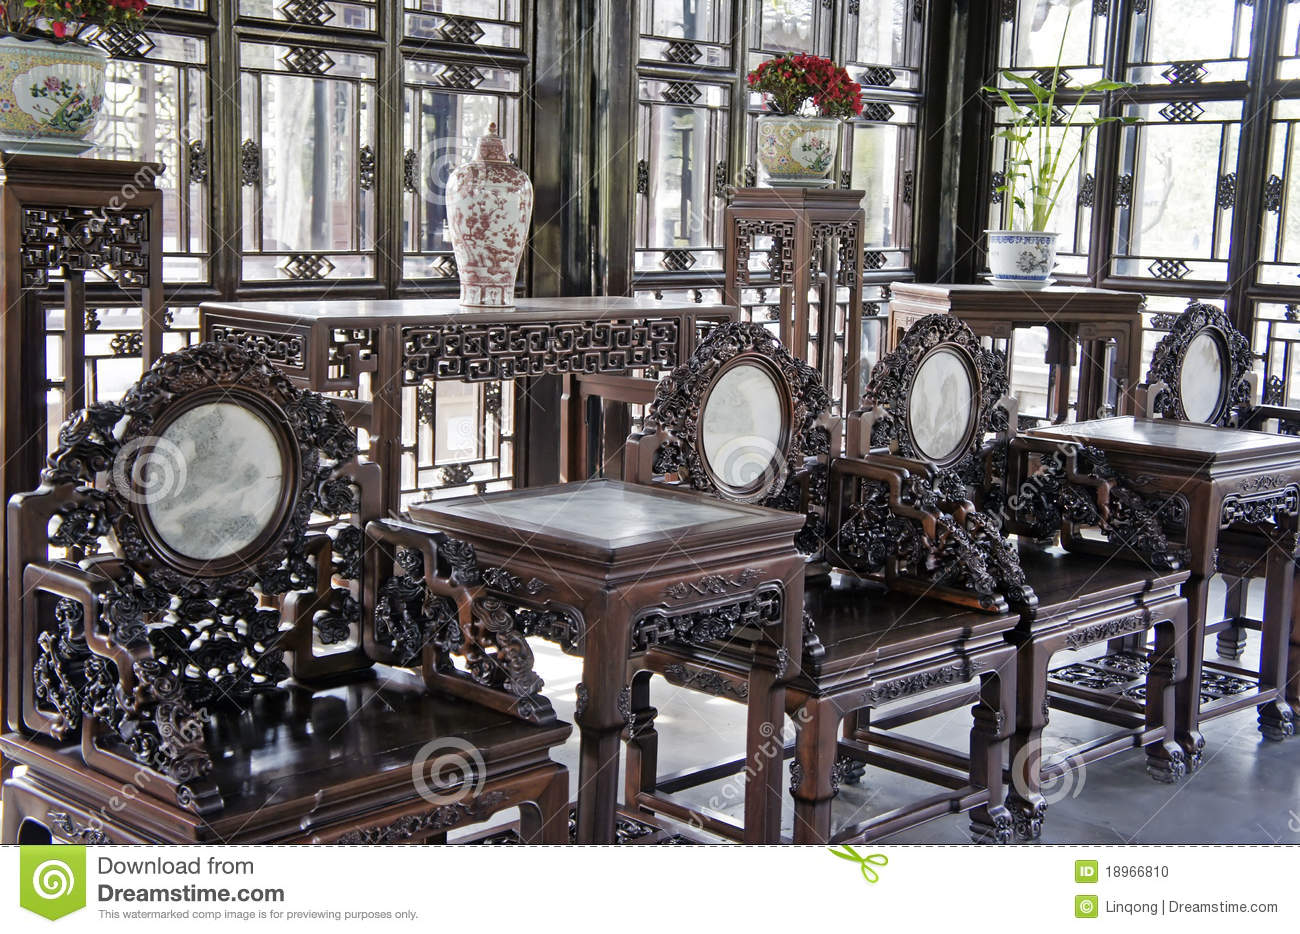 Asian Antique Furniture Chinese Antique Furniture Stock Photo - Image: 18966810